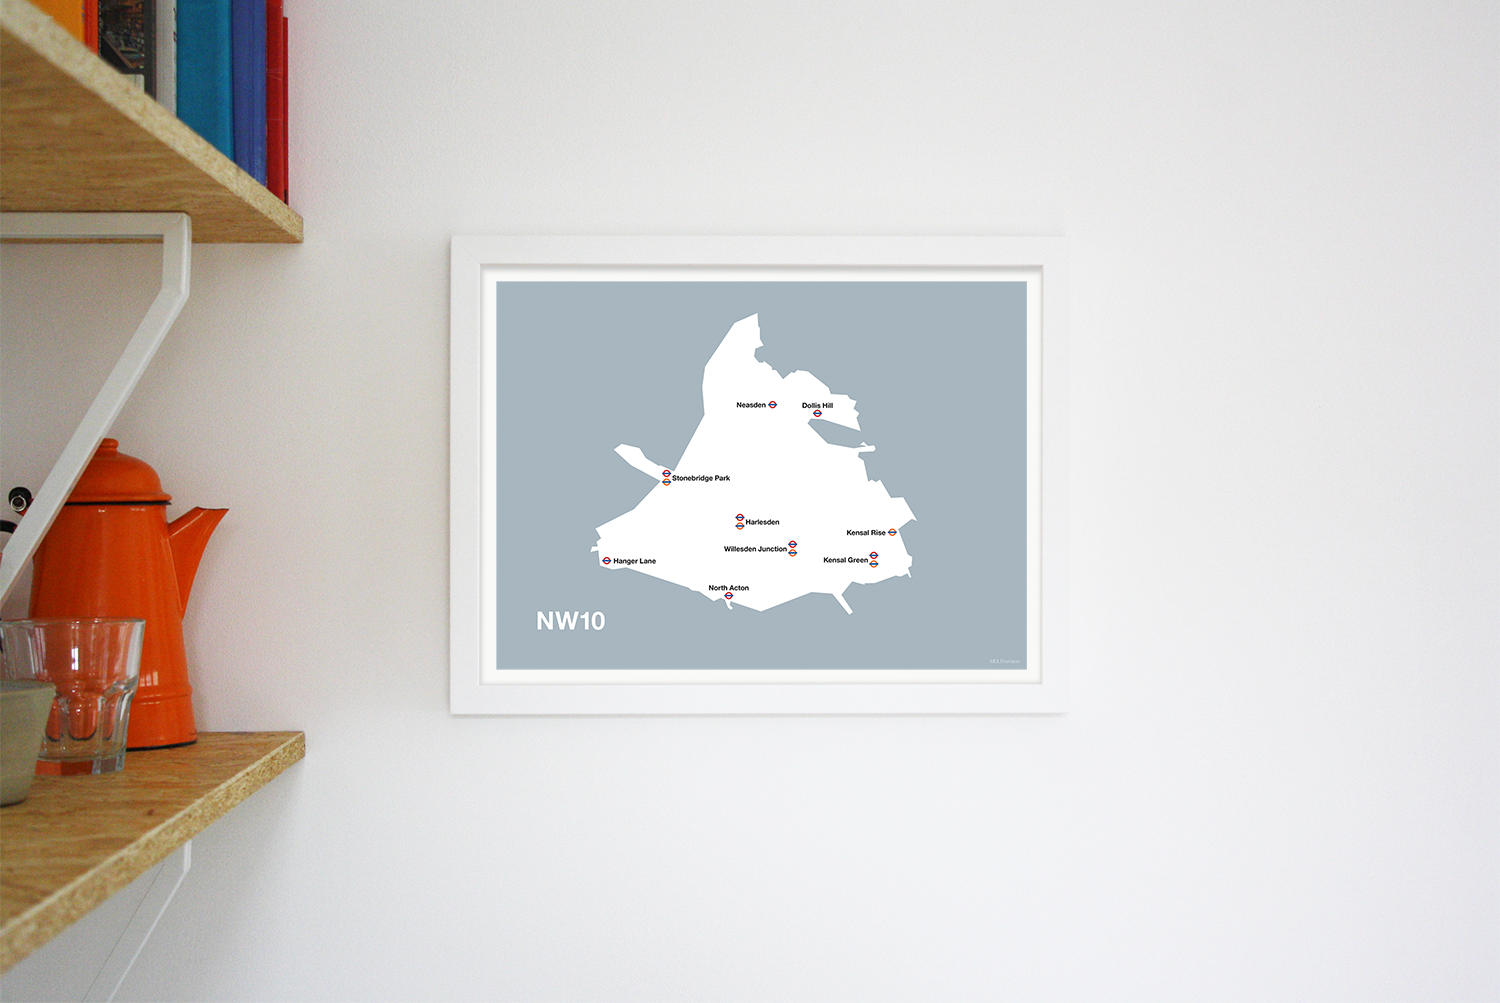 Place in Print MDLThomson NW10 Postcode Map Art Print Lifestyle